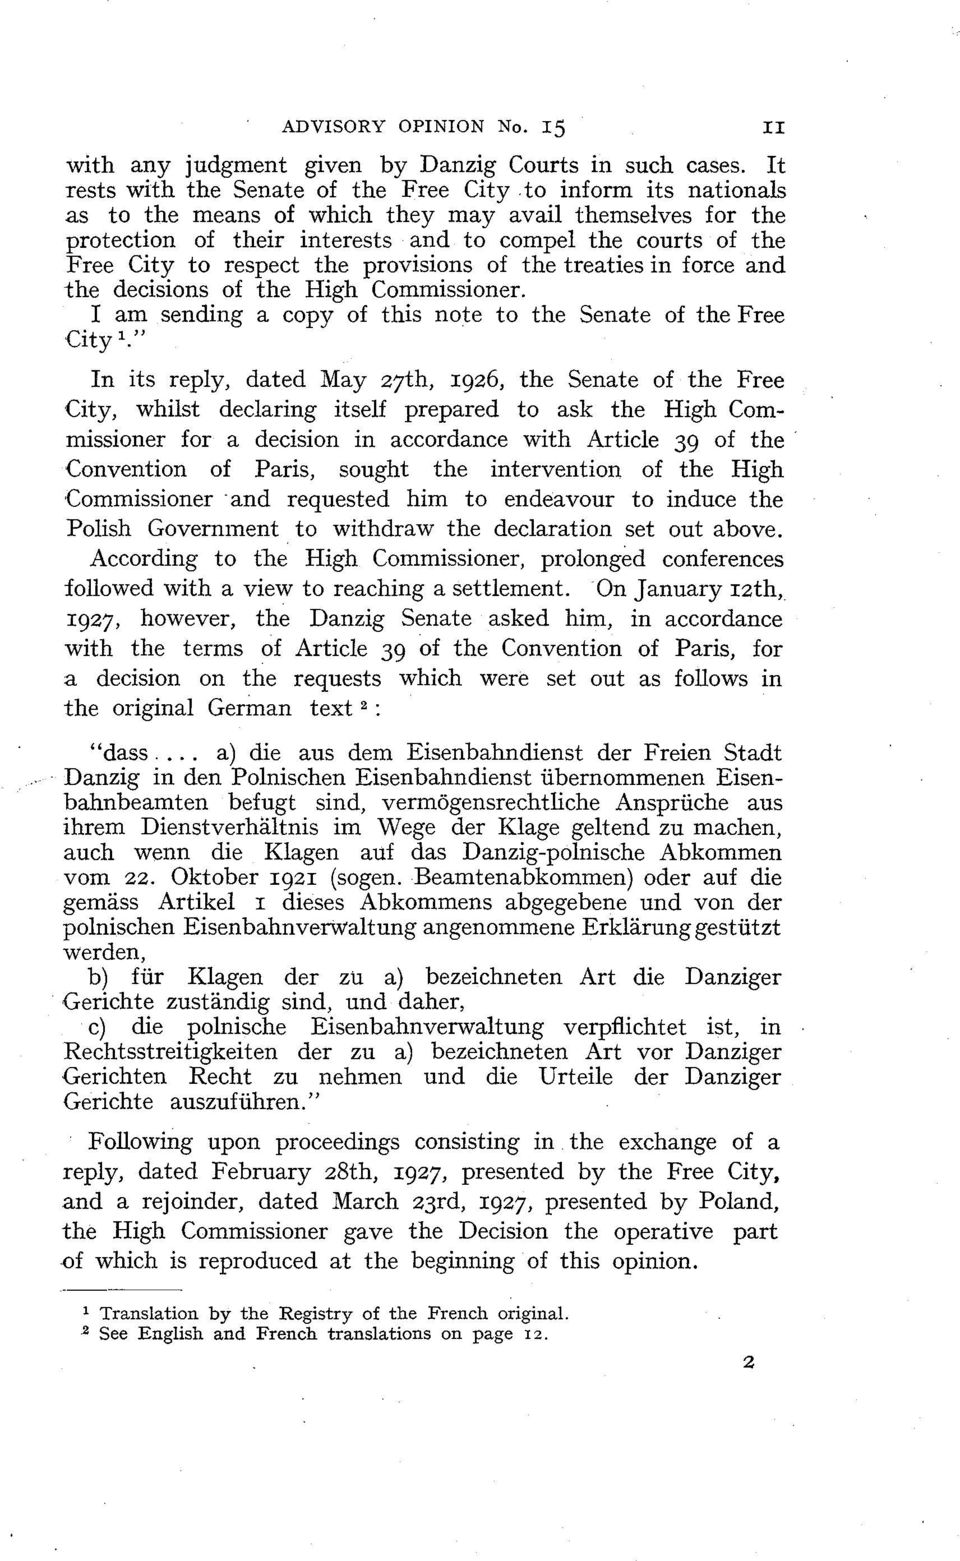 respect the provisions of the treaties in force and the decisions of the High Commissioner. 1 am sending a copy of this note to the Senate of the Free City l.